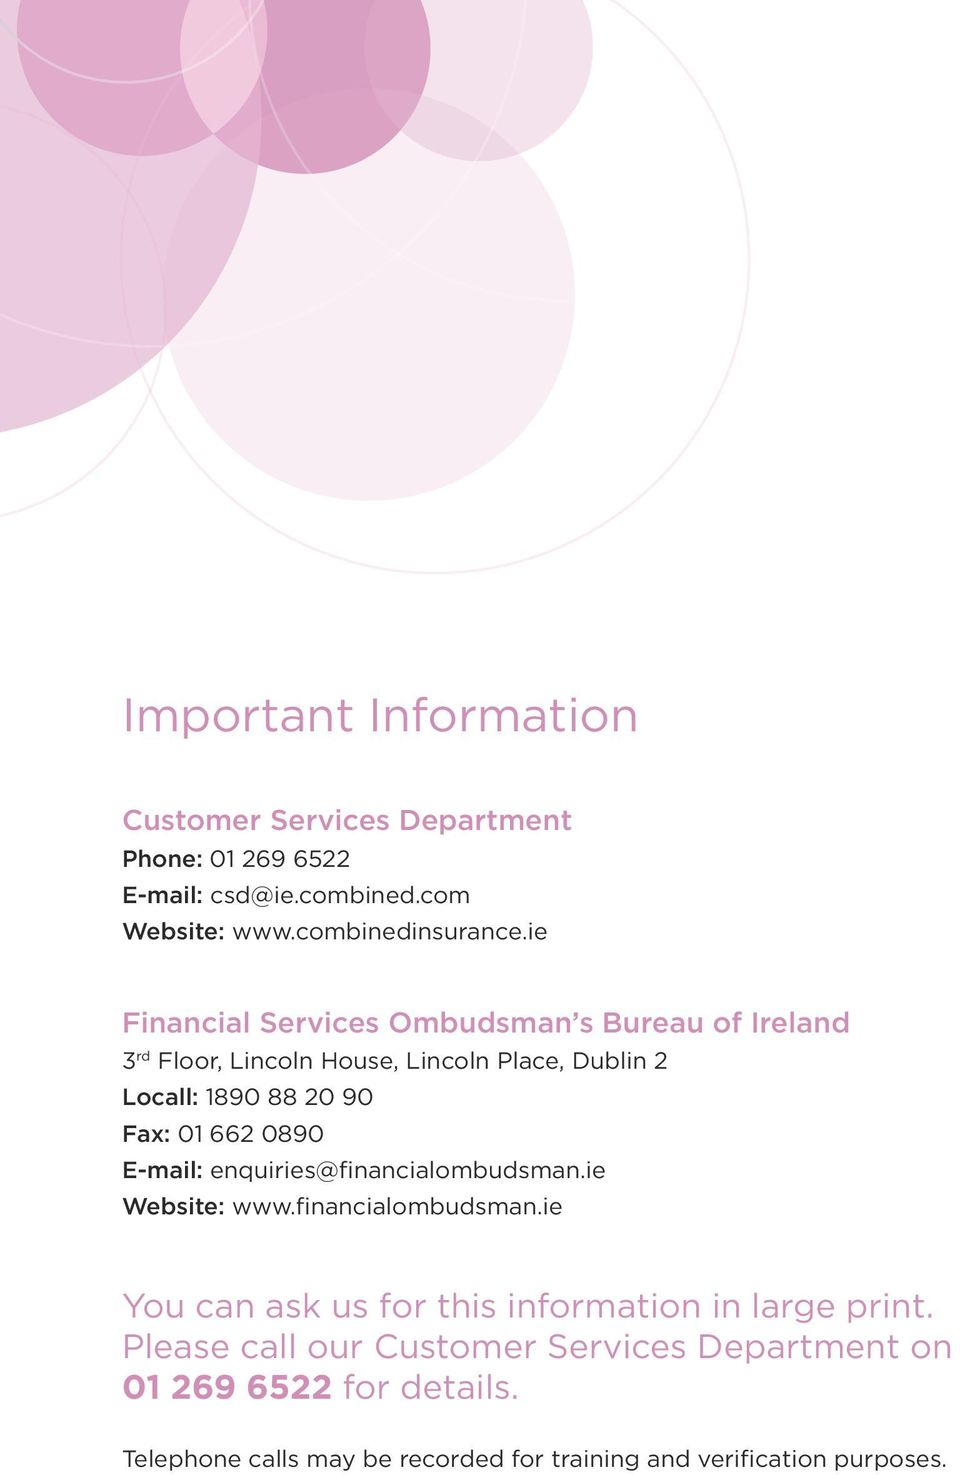 662 0890 E-mail: enquiries@financialombudsman.ie Website: www.financialombudsman.ie You can ask us for this information in large print.